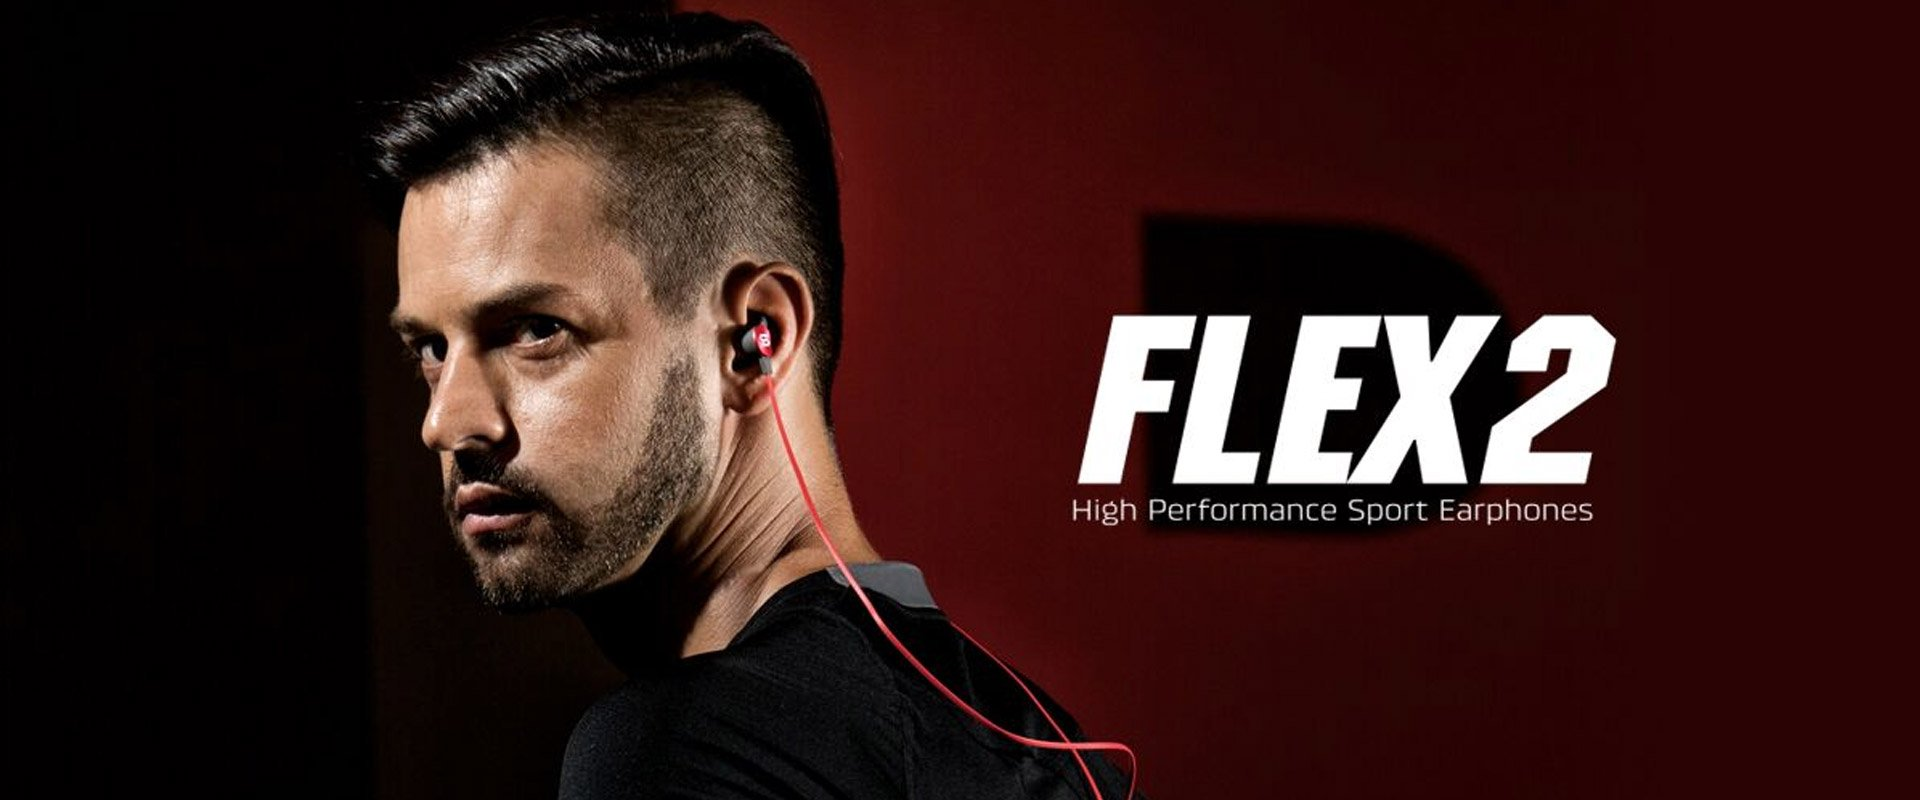 Soul FLEX2 high performance sports earphones